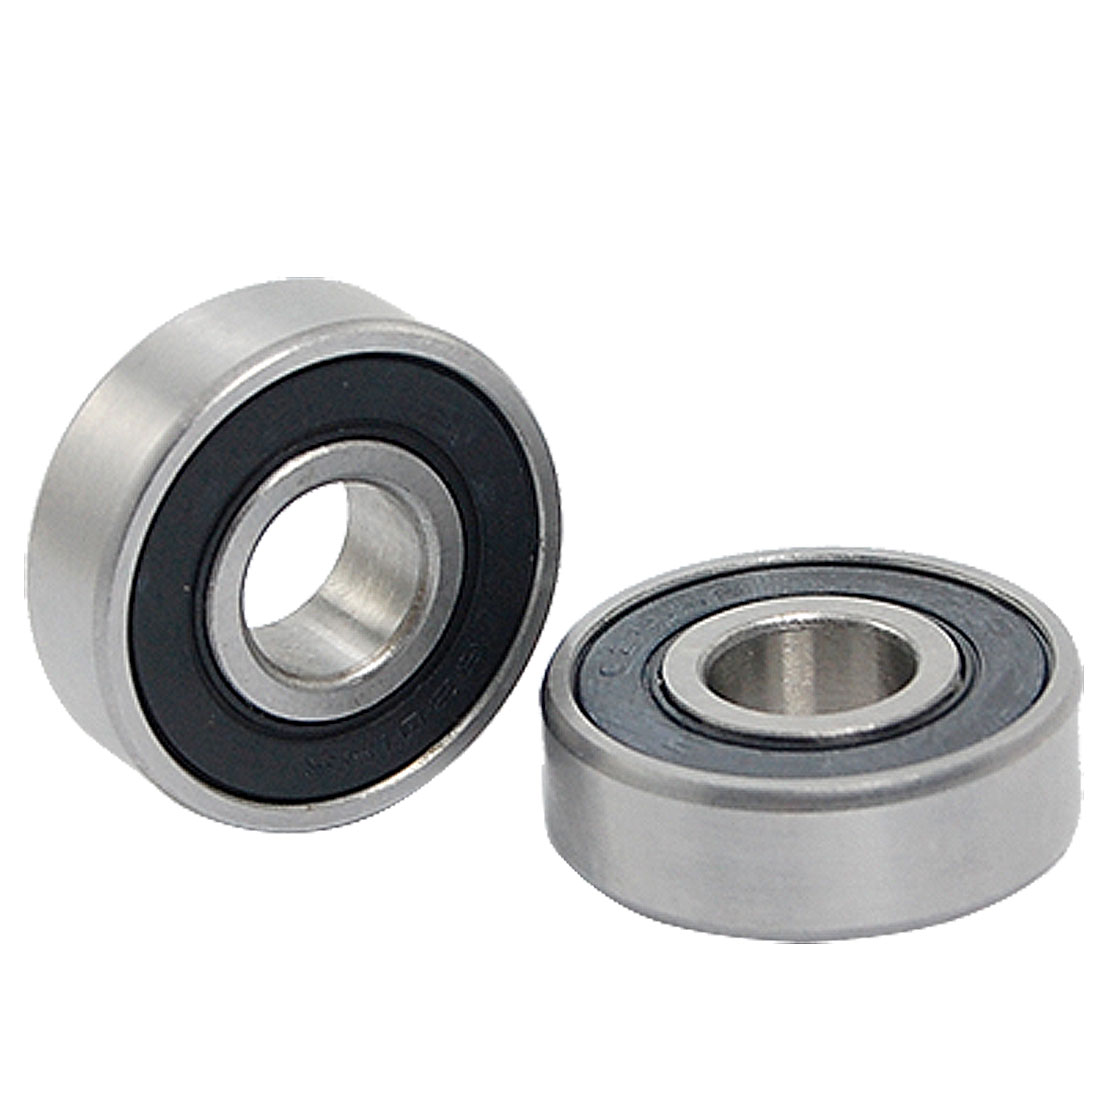 Unique Bargains Replacement Roller Blade Wheels 62022rs. How To Make A Roll Top Desk. Desks Black. Used Dining Room Tables. Coctail Table. Table Top Epoxy. End Tables For Sale. Tailgate Tables. Triangular Side Table